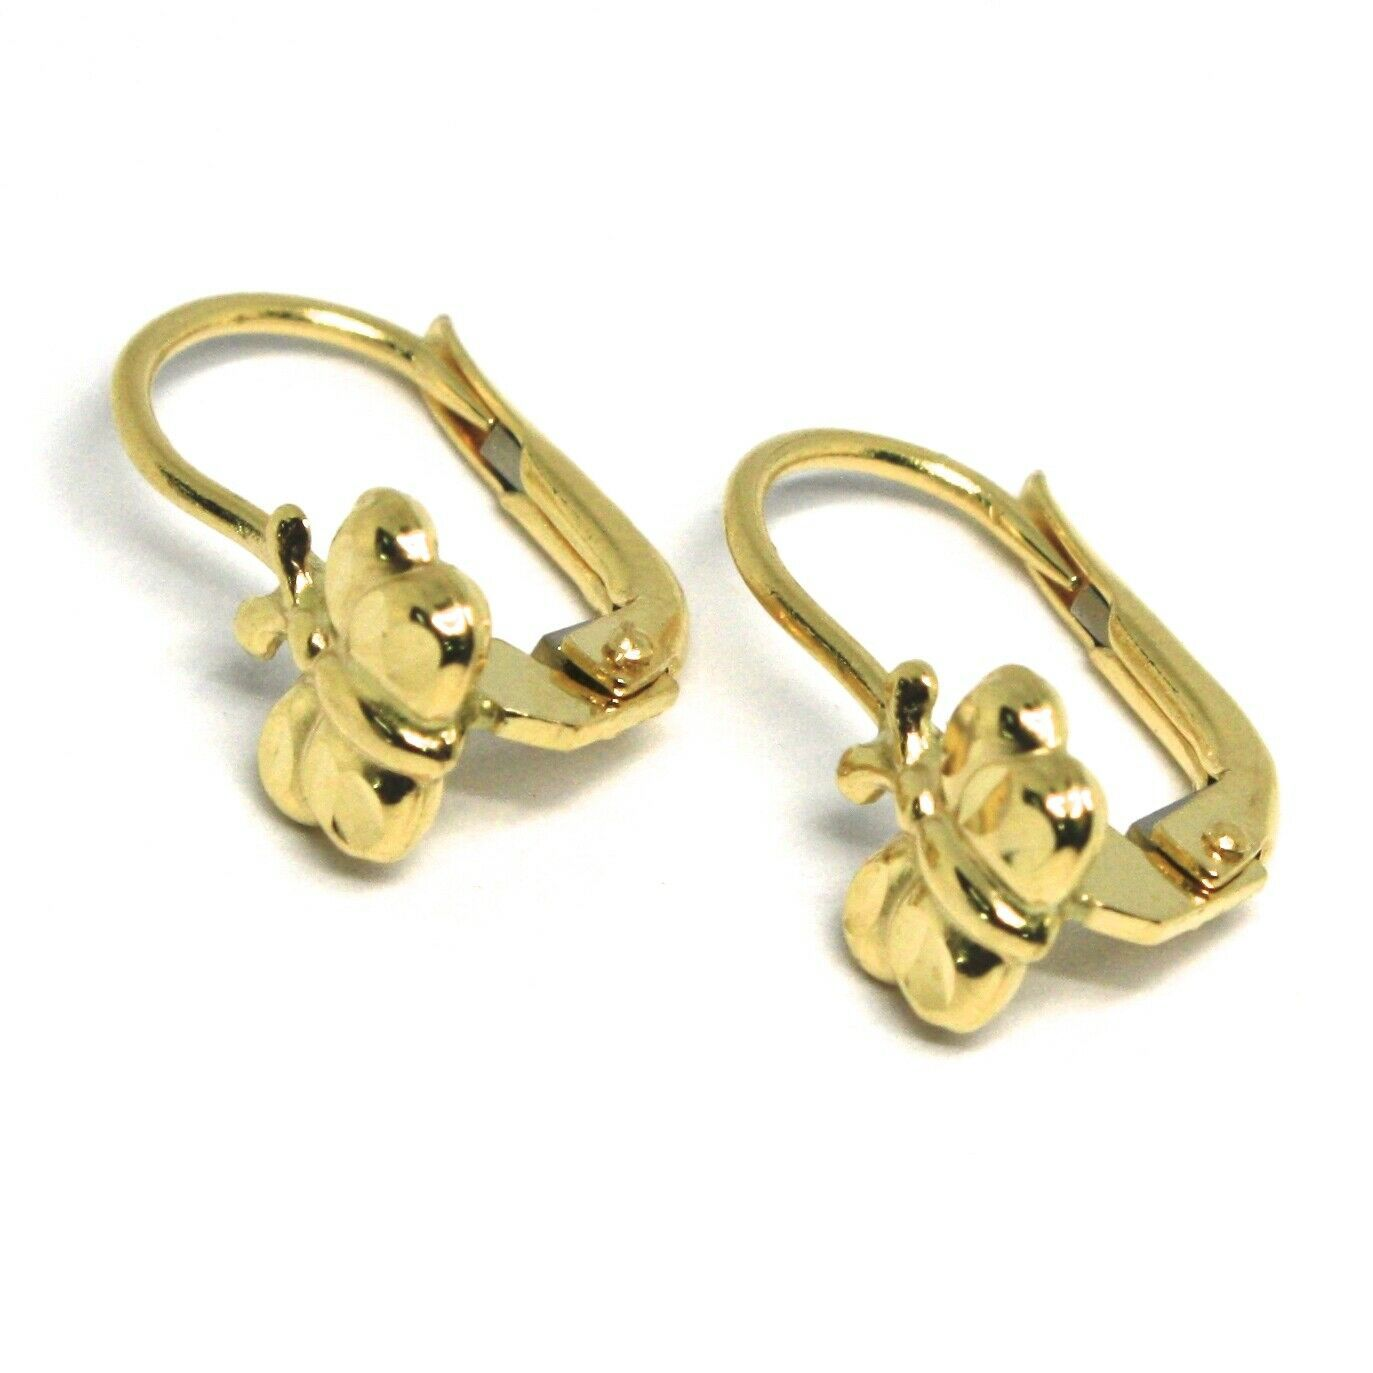 18K YELLOW GOLD KIDS EARRINGS, HAMMERED BUTTERFLY, LEVERBACK CLOSURE, ITALY MADE